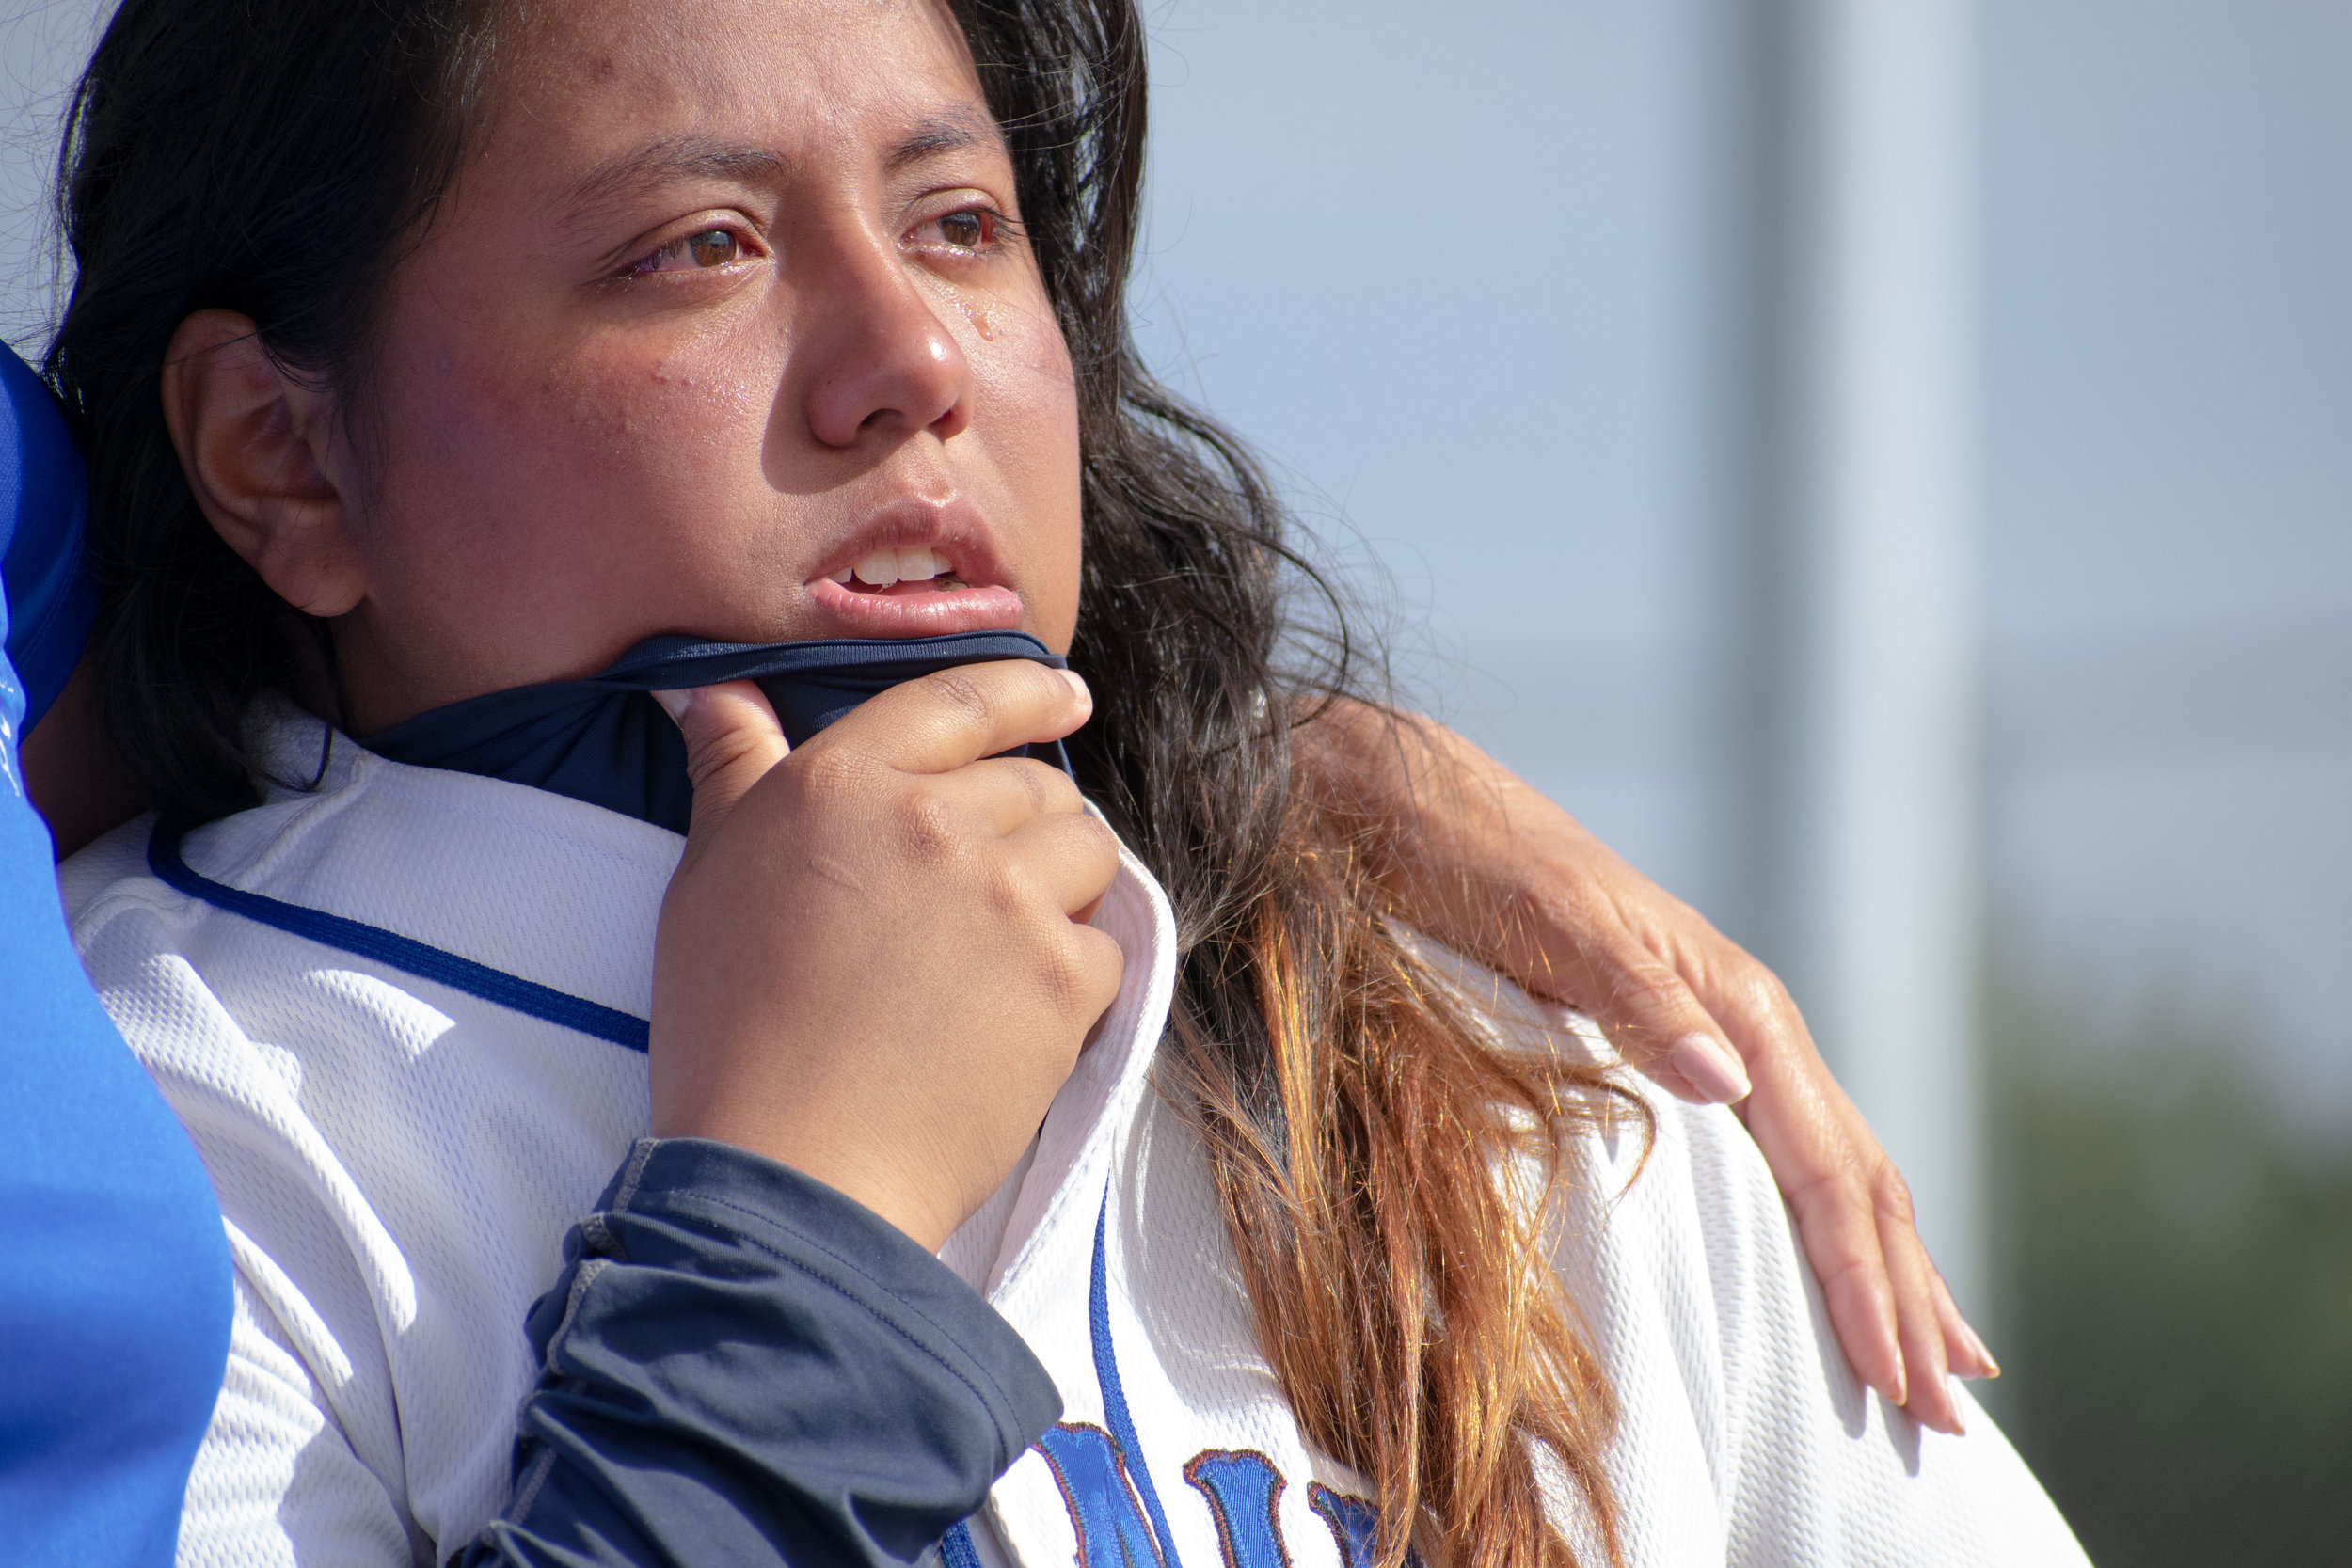 Santa Monica College Corsair Ashley Sasso (#12), a sophomore who played her last game gets emotional as the team discusses the season after the final game of the season against the Santa Barbara Vaqueros on Friday, April 20, 2018 at the John Adams Middle School Field in Santa Monica, California. The game was a 7-1 loss for the Corsairs, ending the season with an 8-21 record. (Ethan Lauren/Corsair Photo)